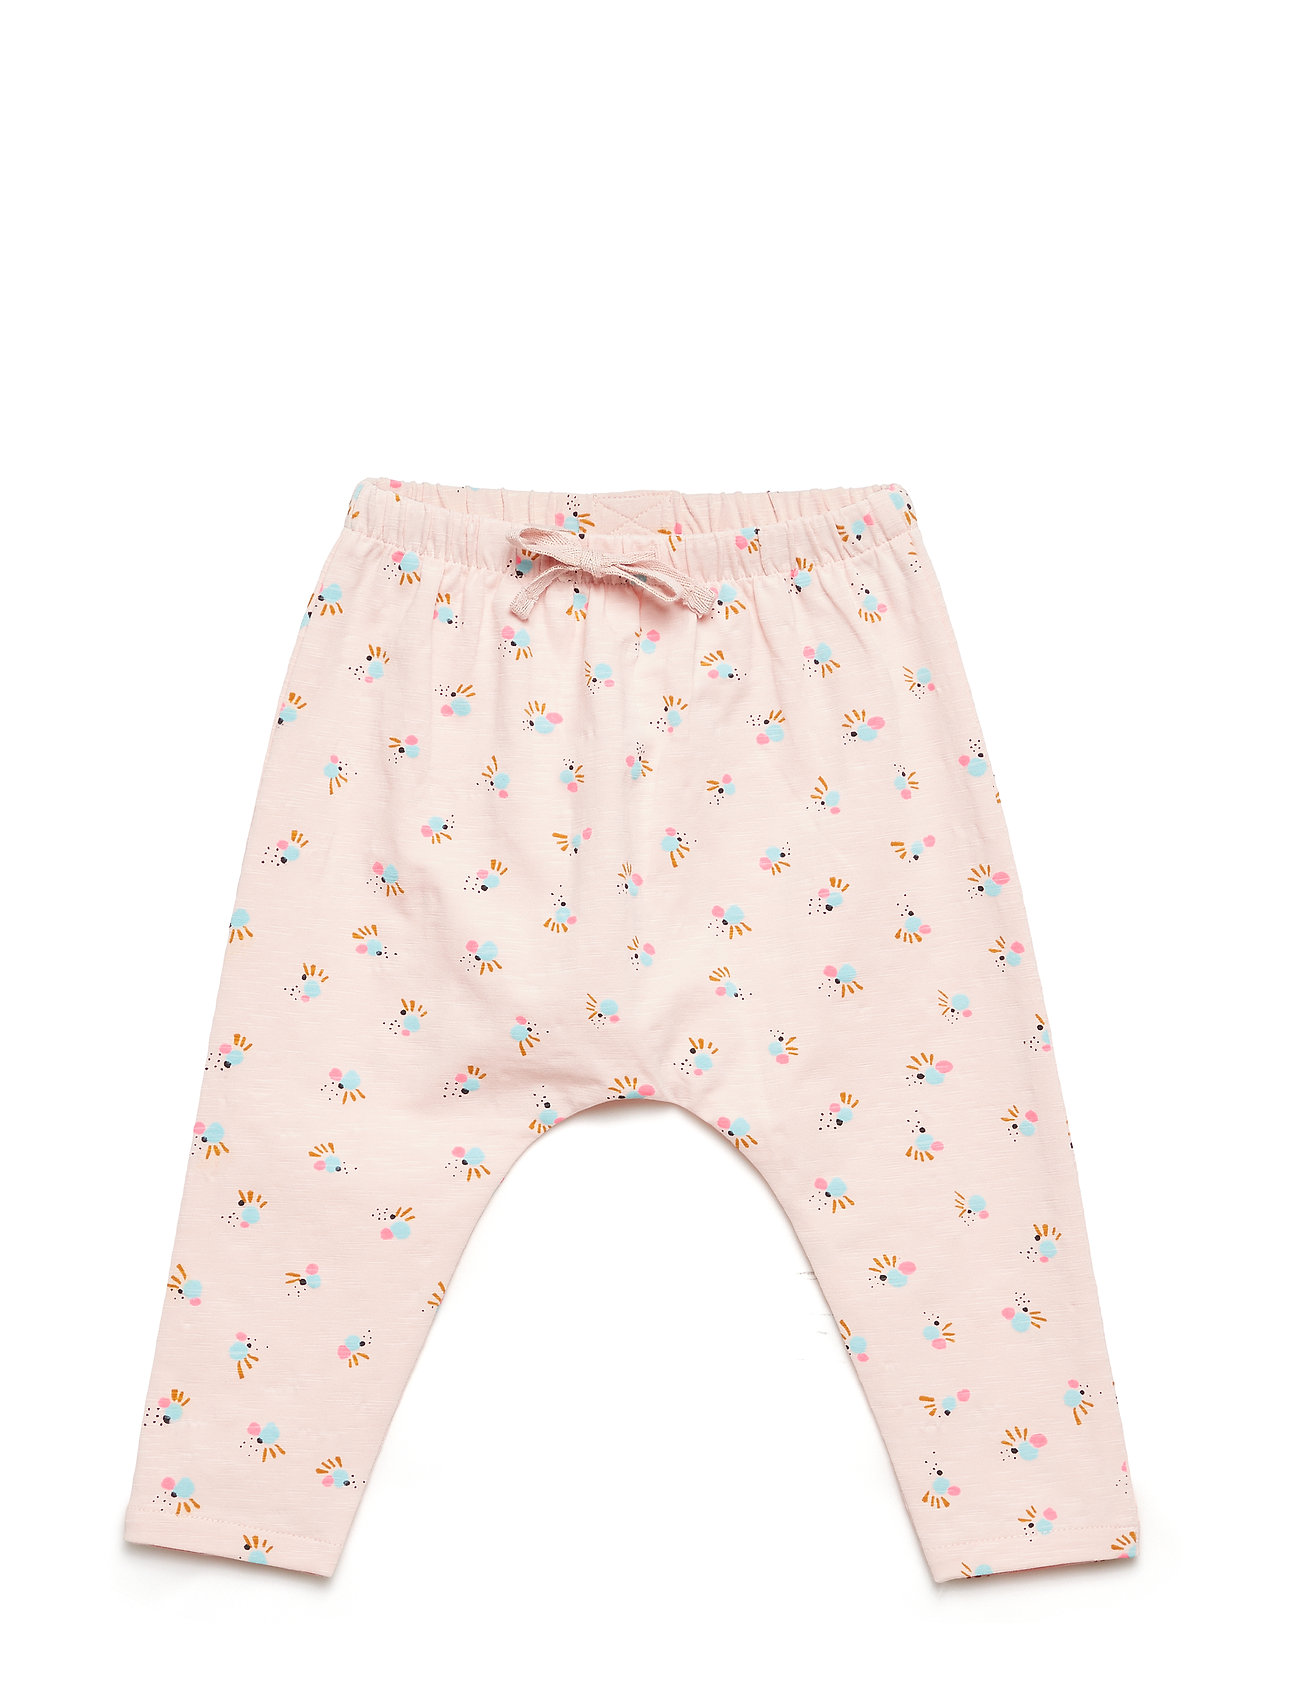 Soft Gallery Hailey Pants - CHINTZ ROSE, AOP COCKATOO